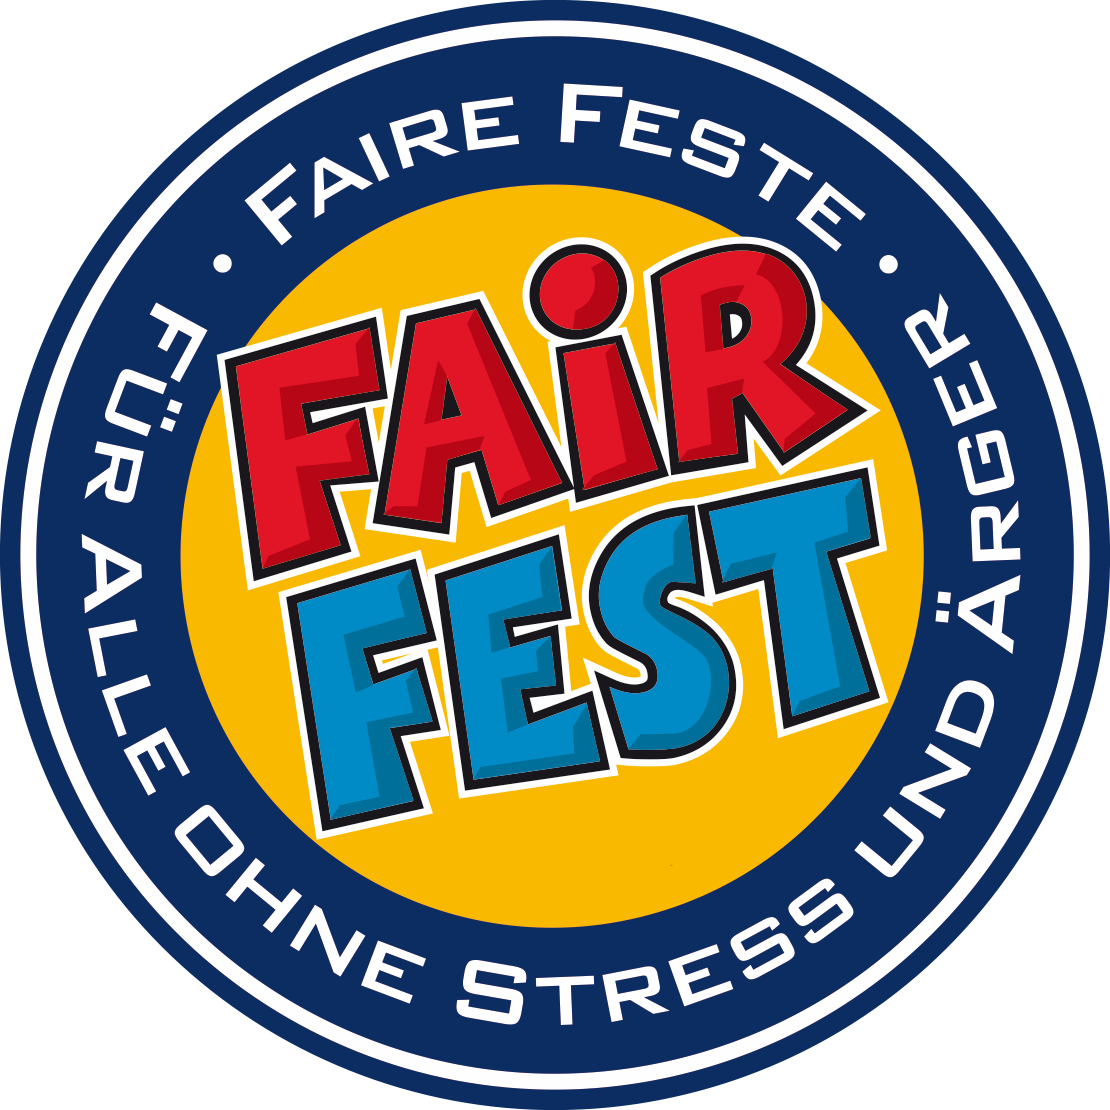 Fairfest Logo neutral